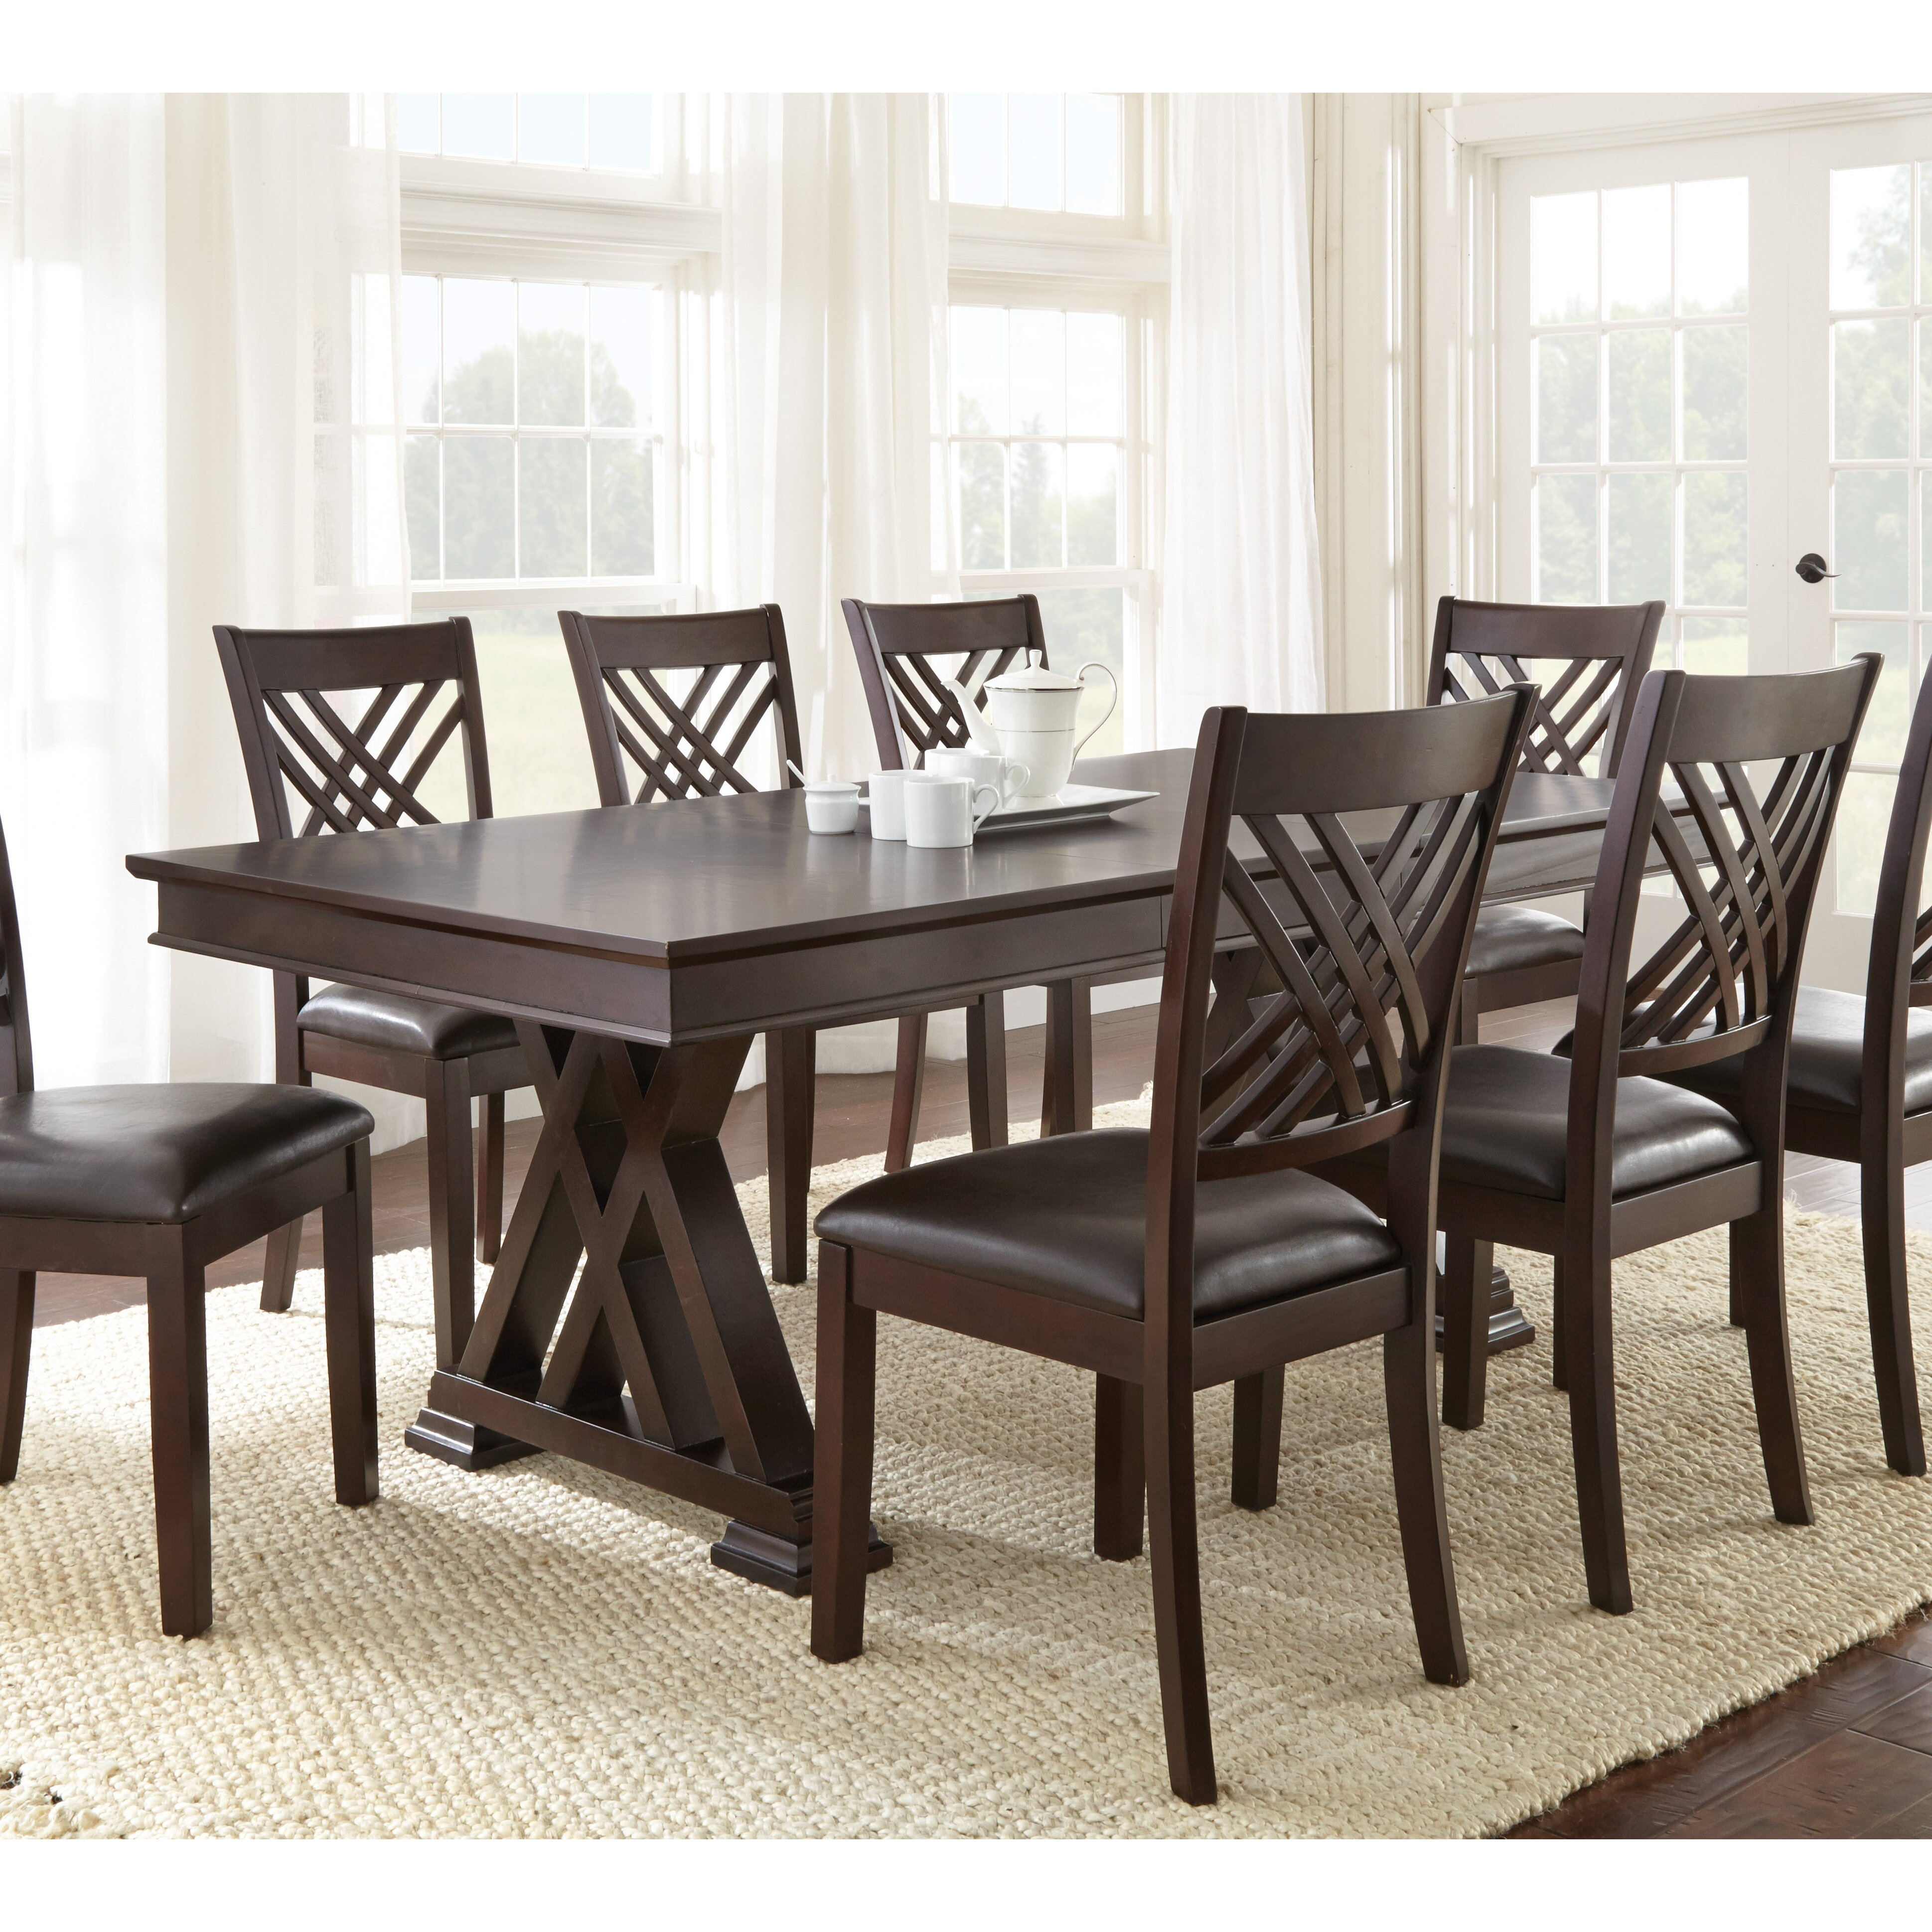 Brayden studio adrian 9 piece dining set reviews wayfair for 9 piece dining room set